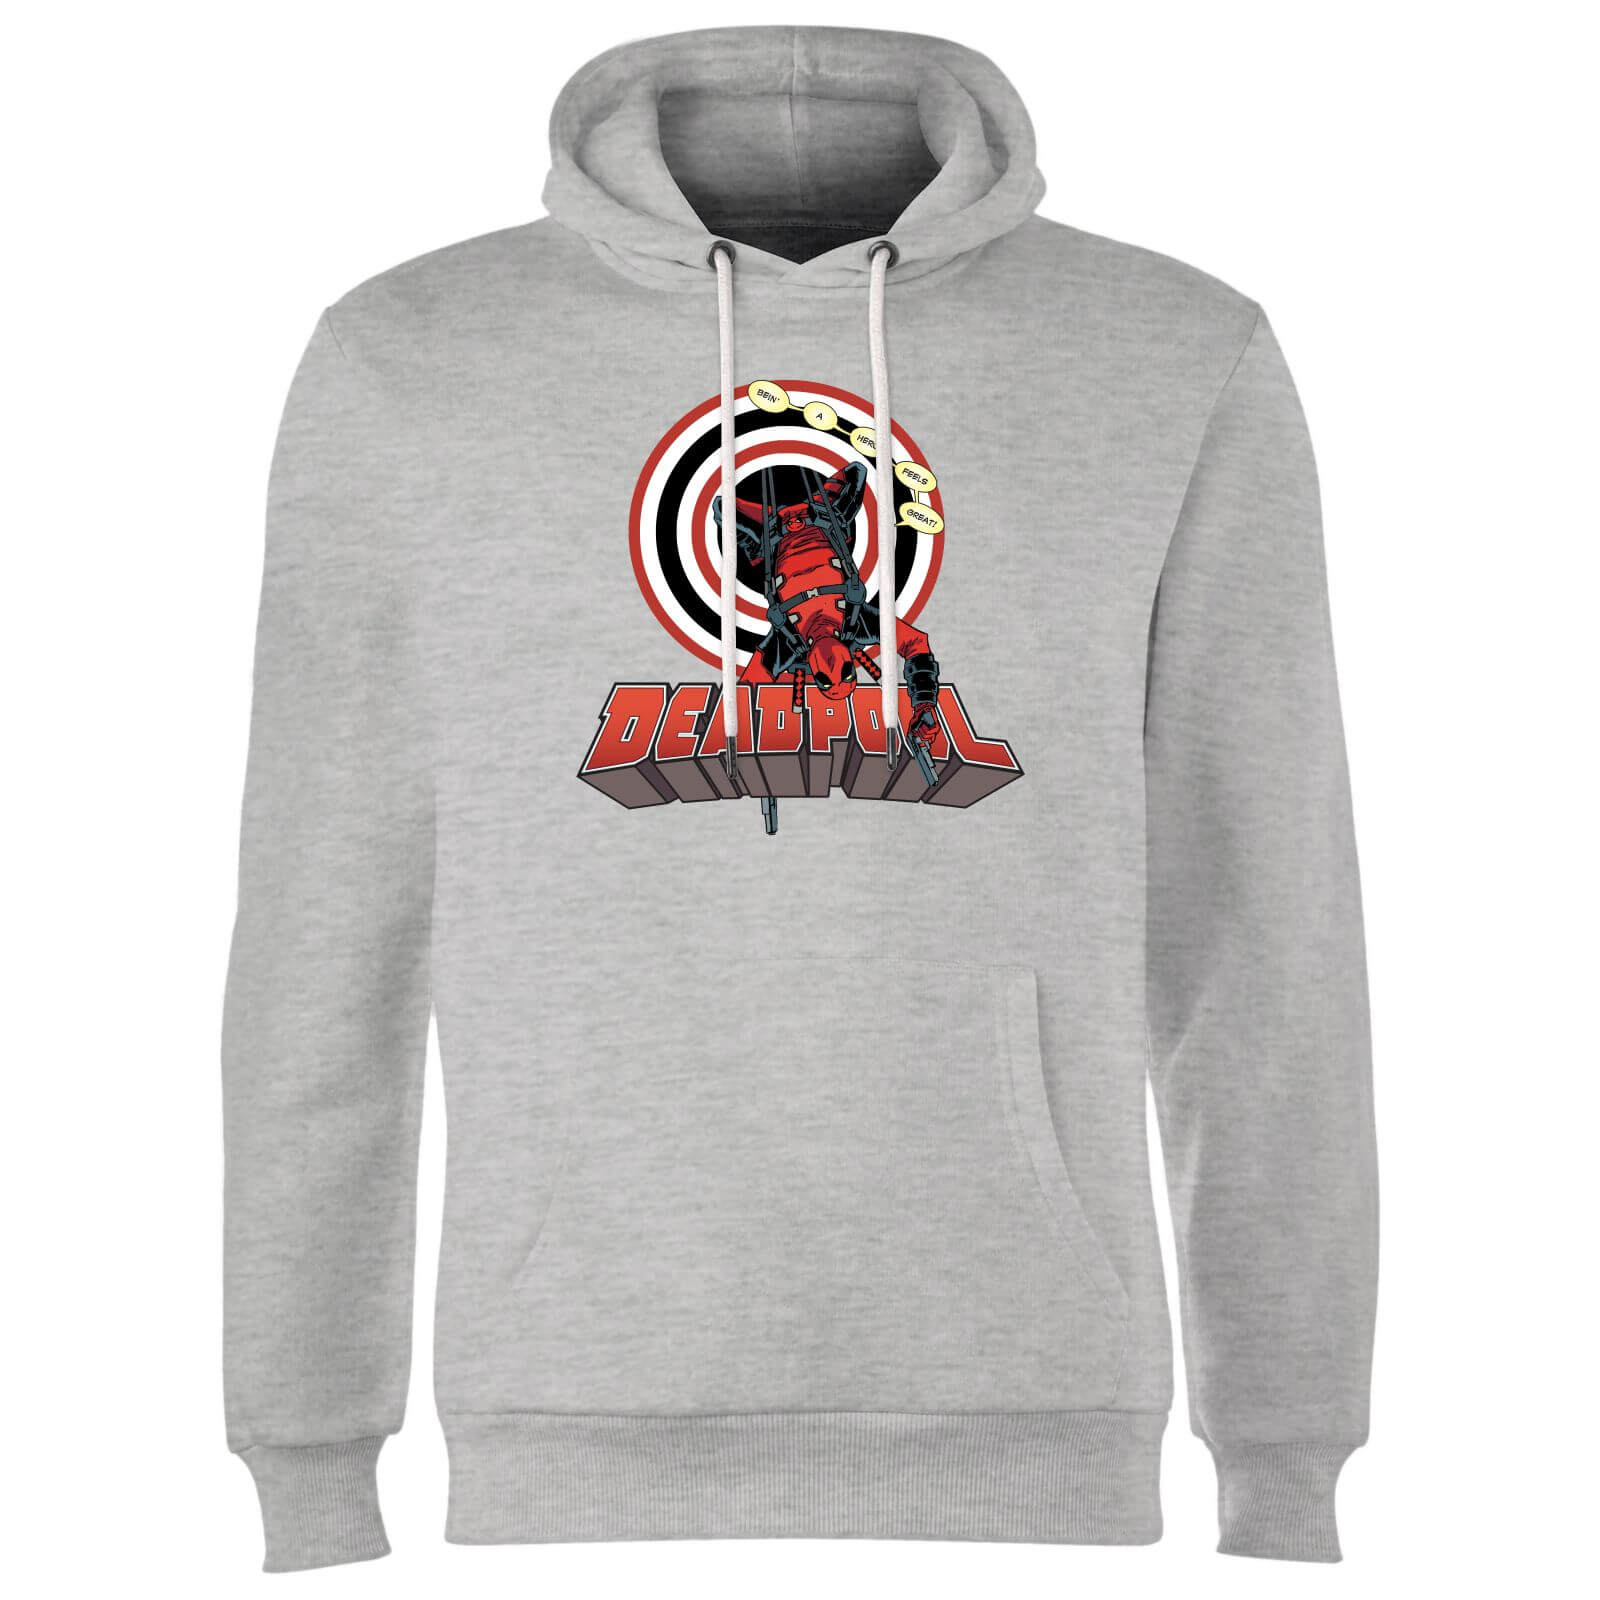 Marvel Deadpool Upside Down Hoodie - Grey